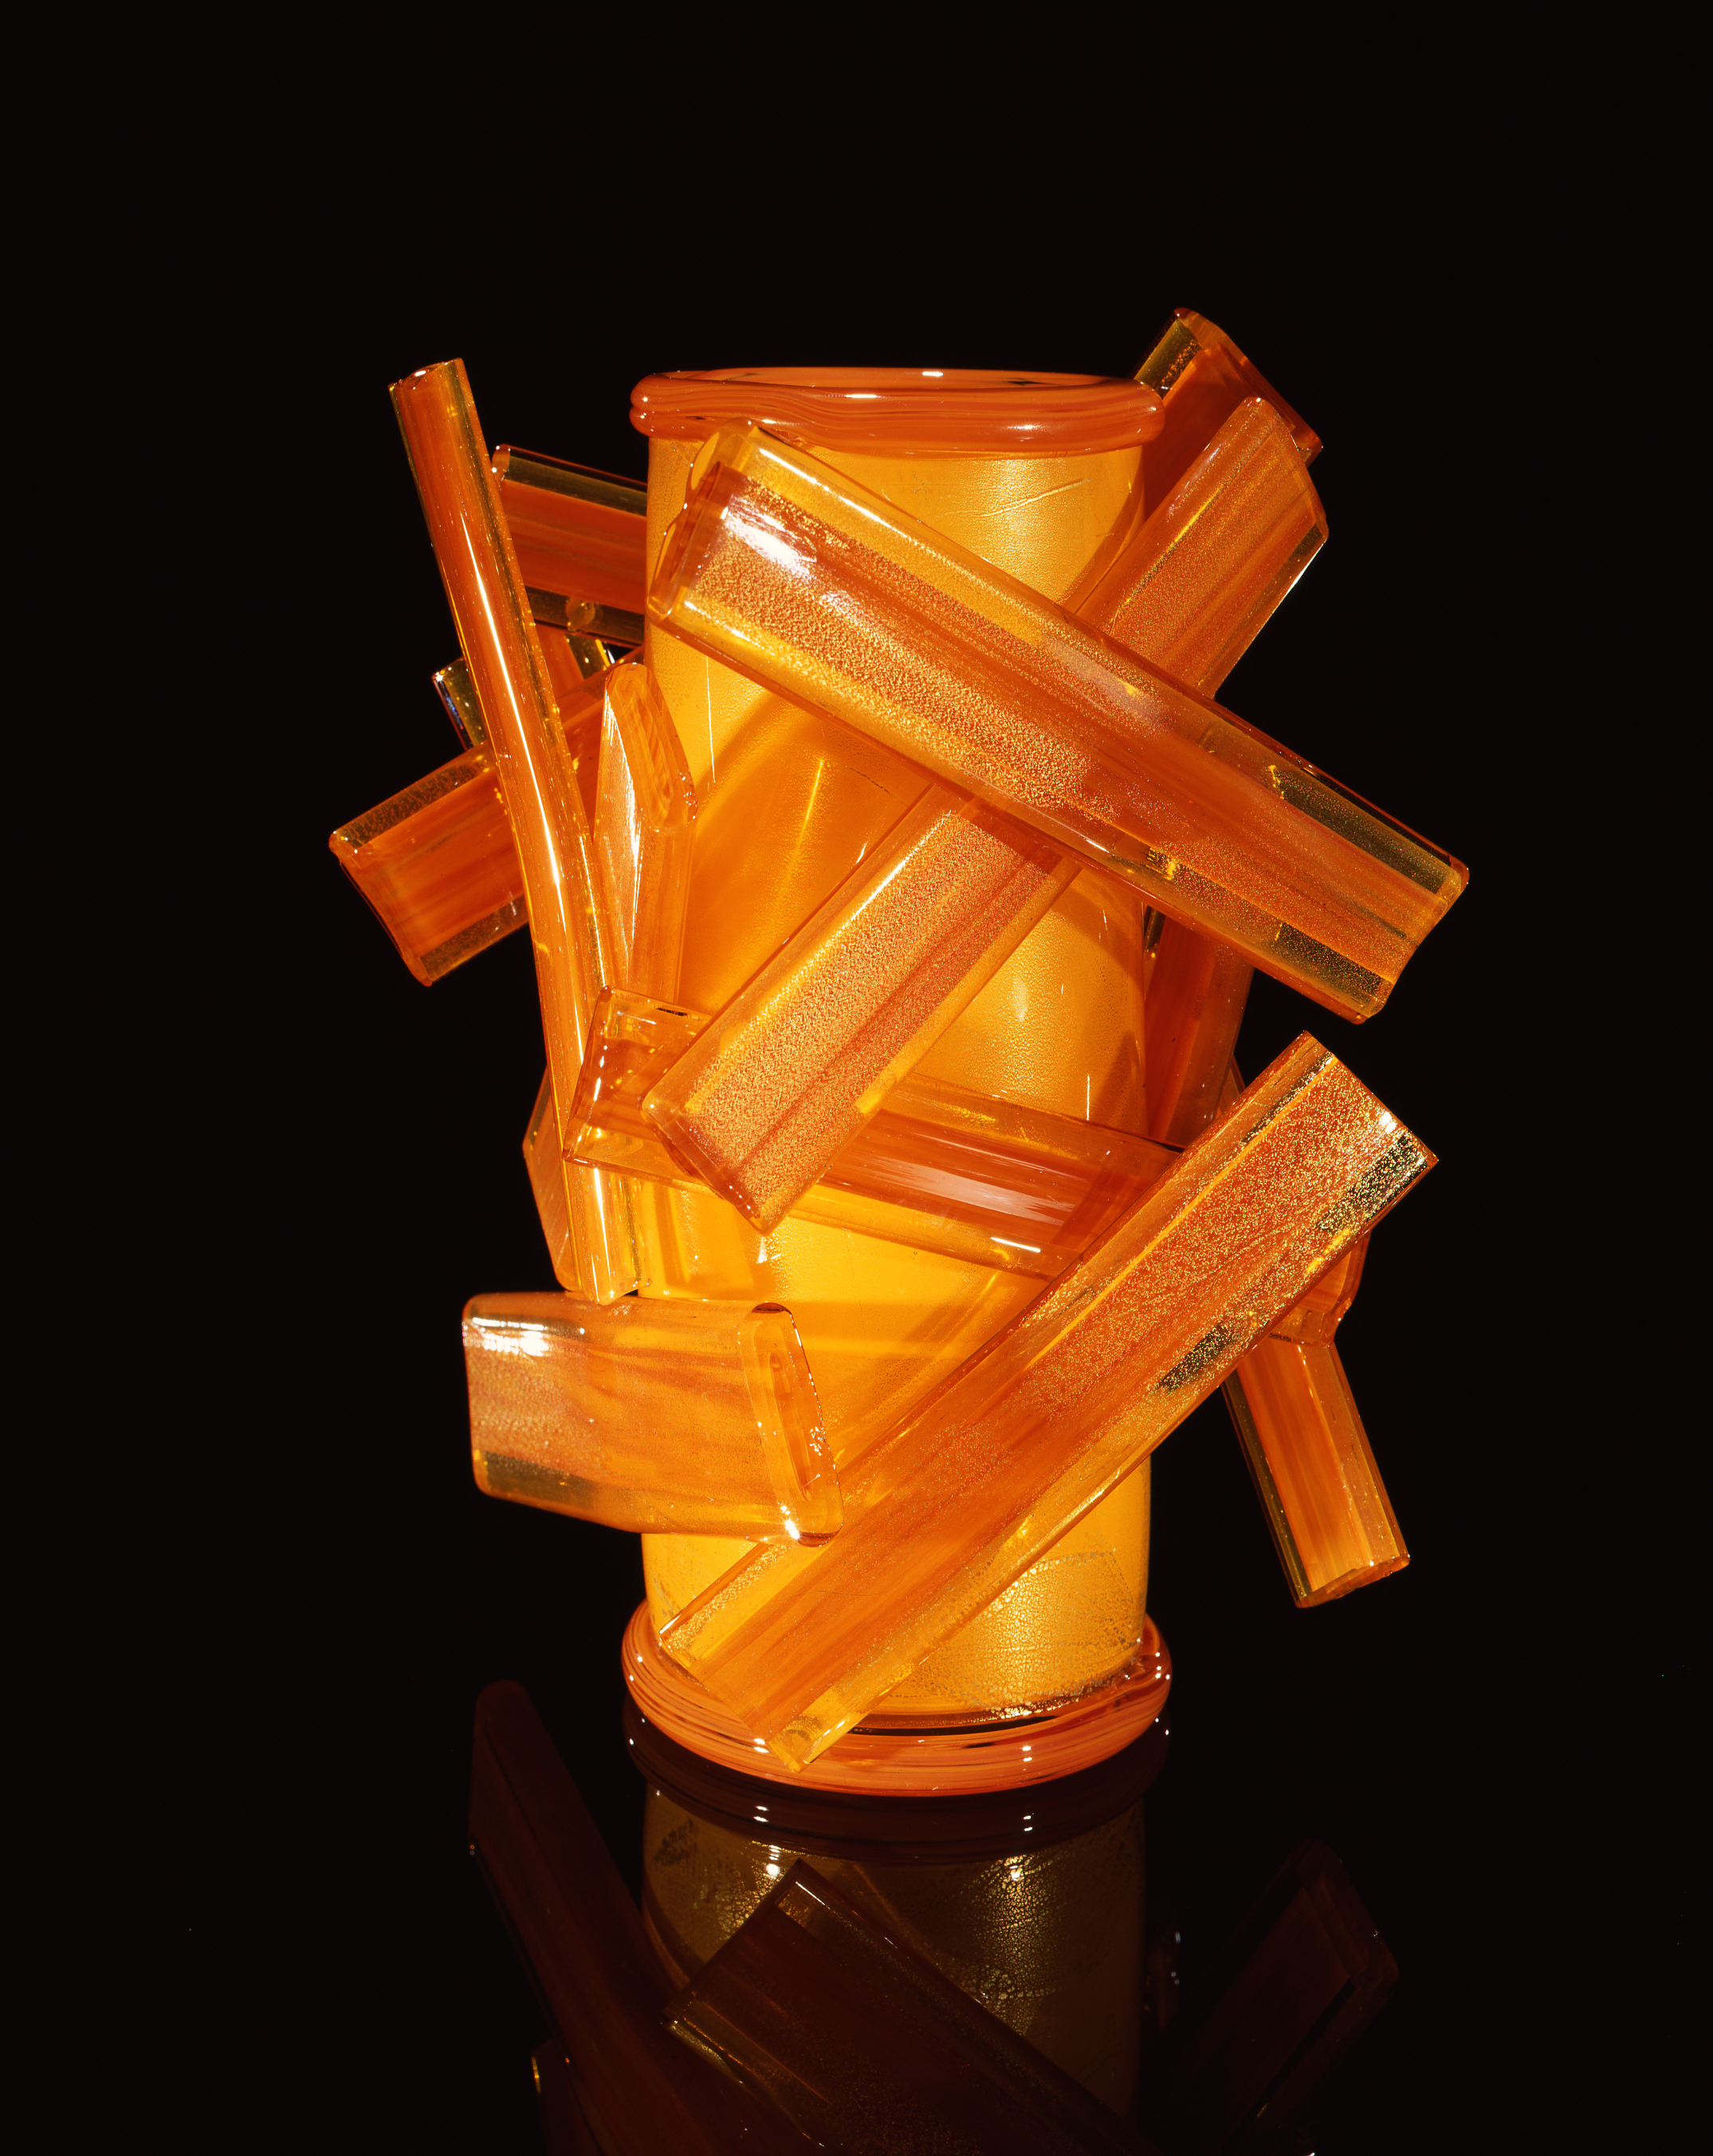 Dale Chihuly,  Persimmon Piccolo Venetian with Orange Swizzles  (1997, glass, 8 1/2 x 7 x 8 inches)